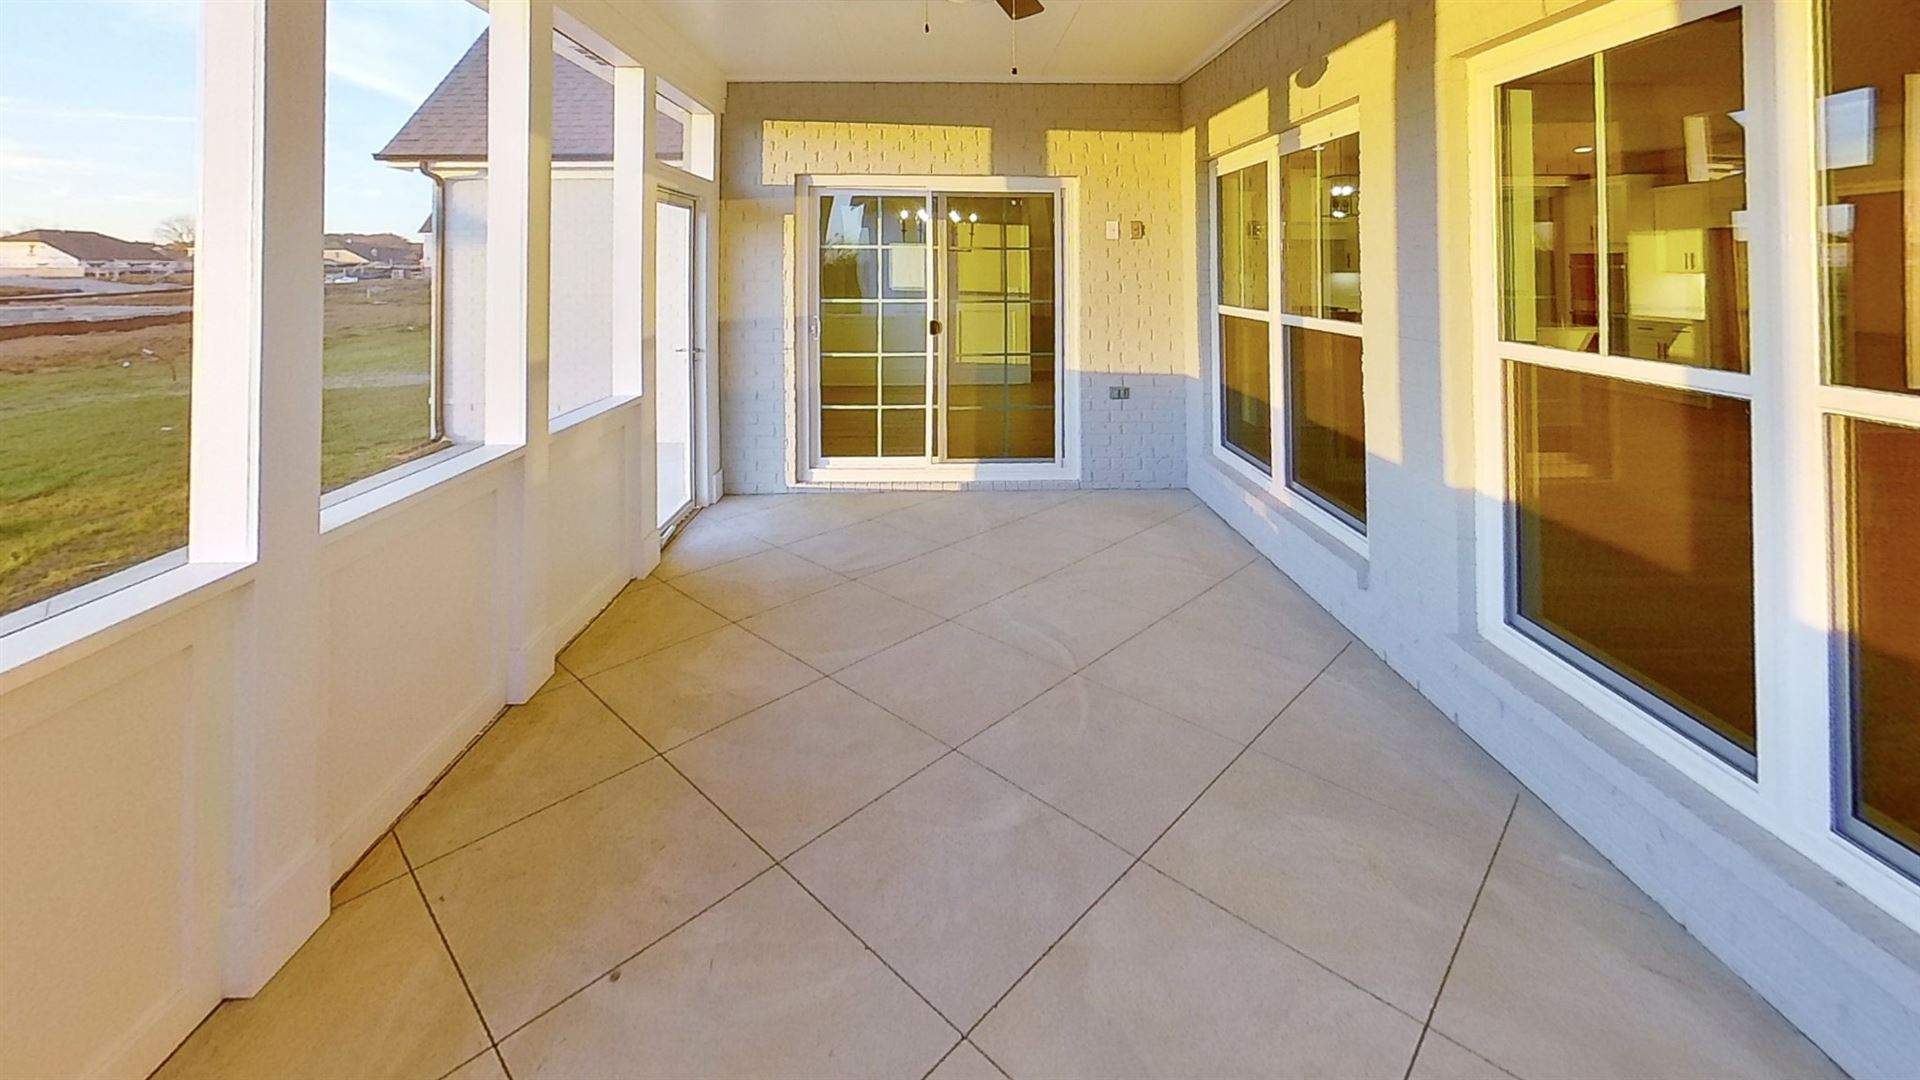 Photo of 8043 Brightwater Way Lot 500, Spring Hill, TN 37174 (MLS # 2242634)